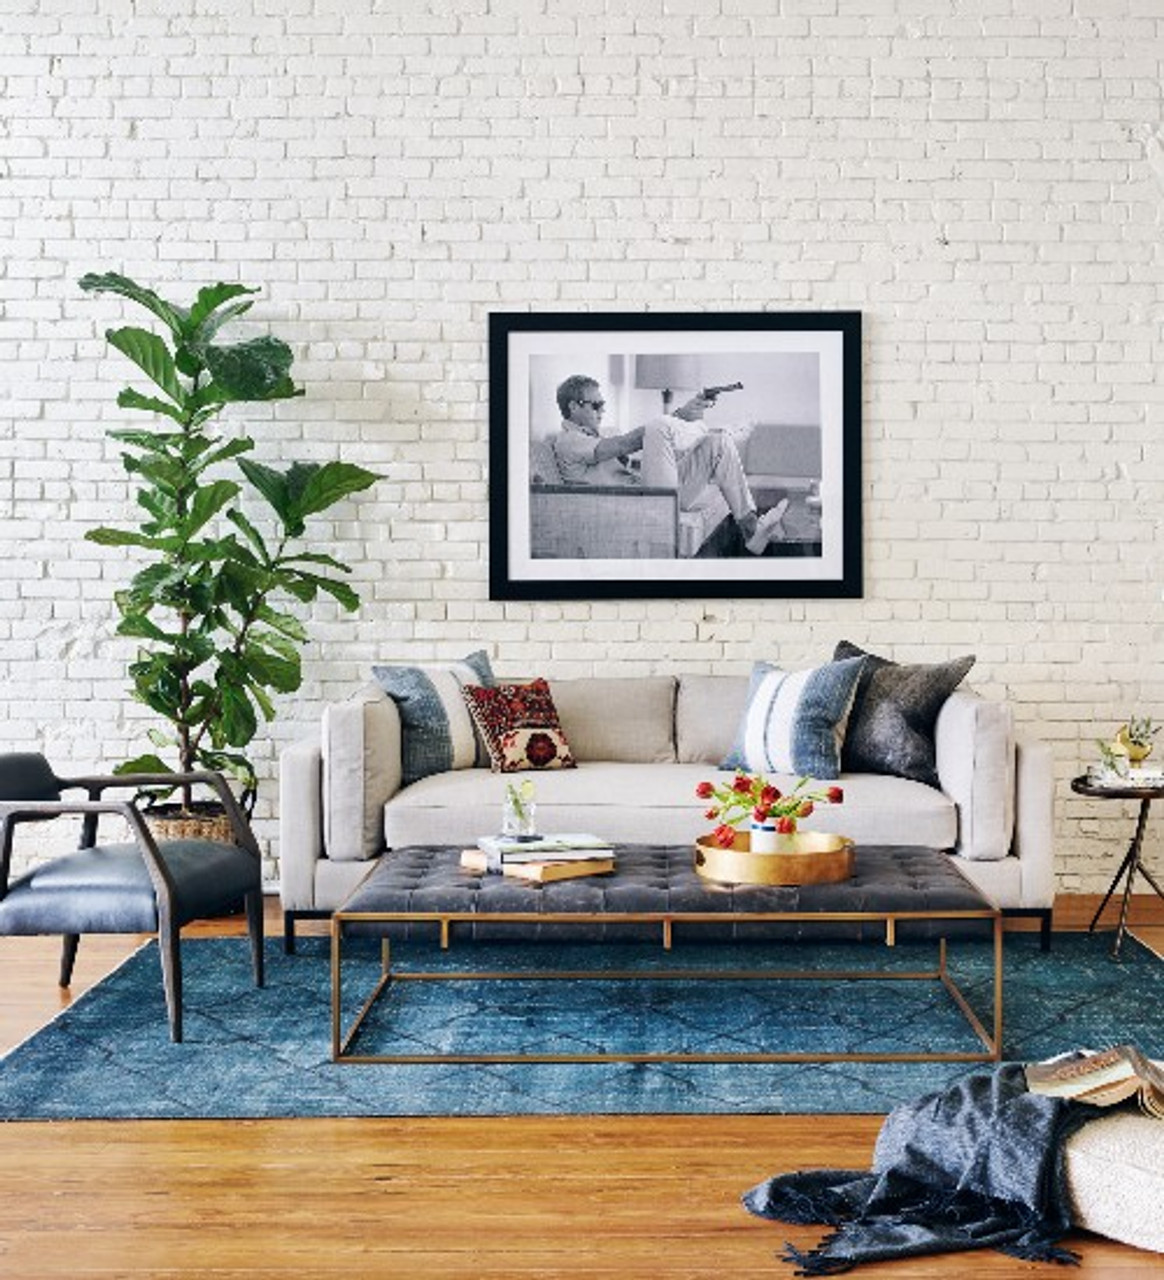 10 Essential Feng Shui Living Room Tips - Zin Home